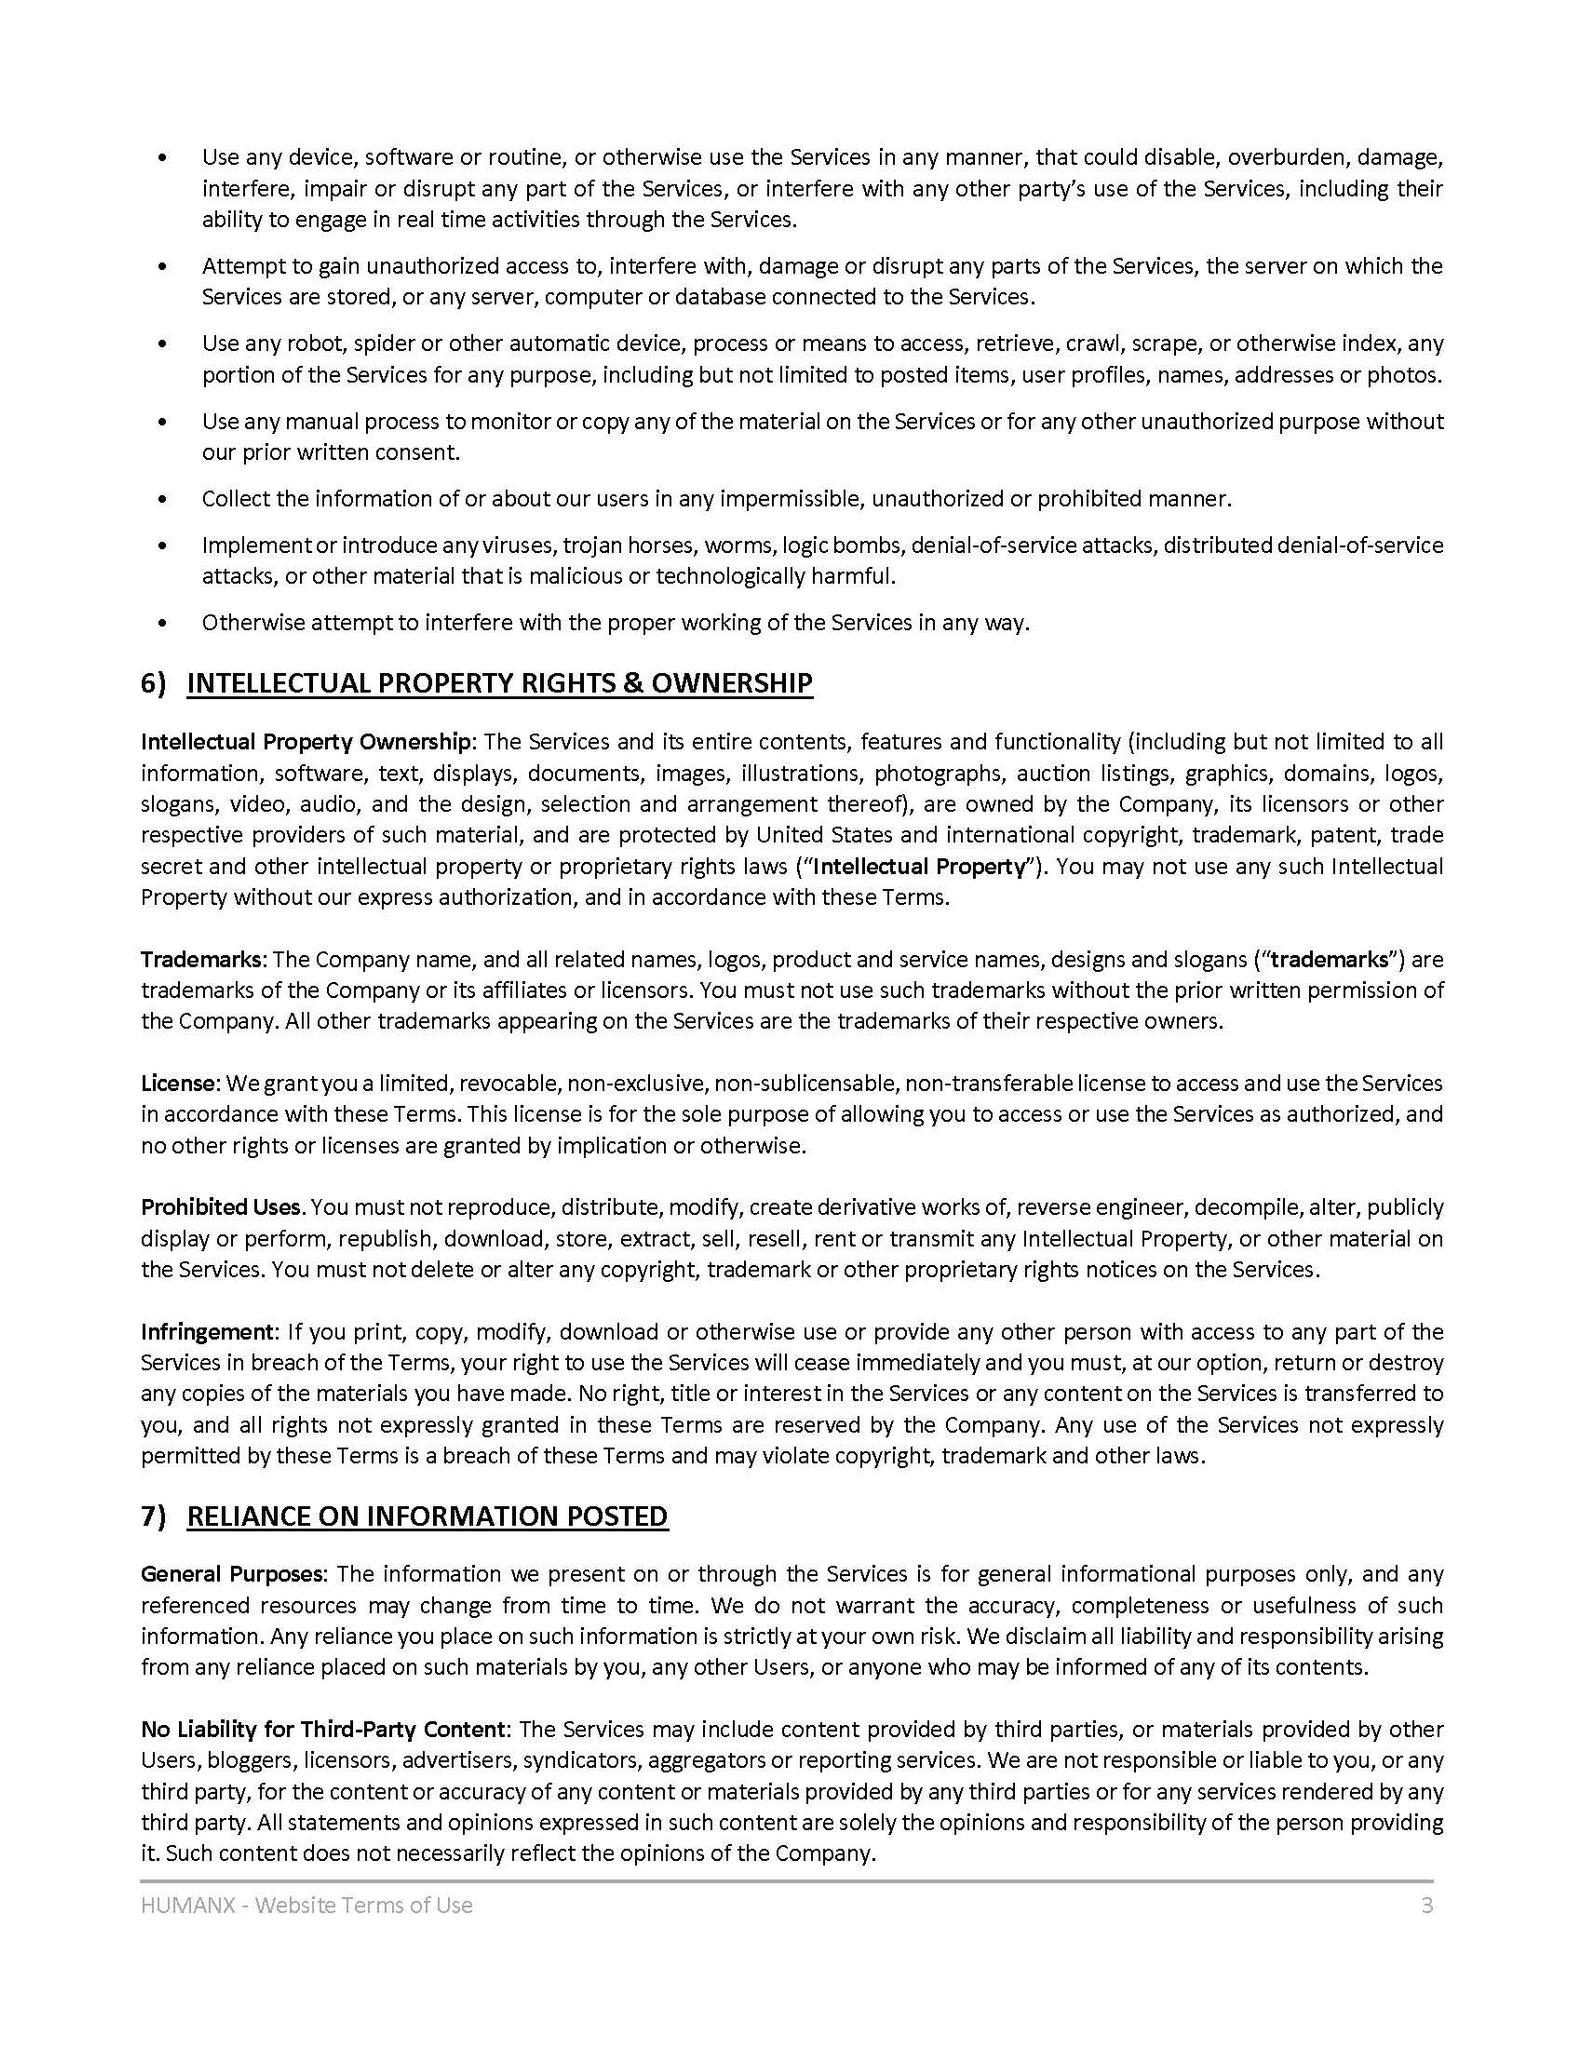 Terms of Use - Page 3